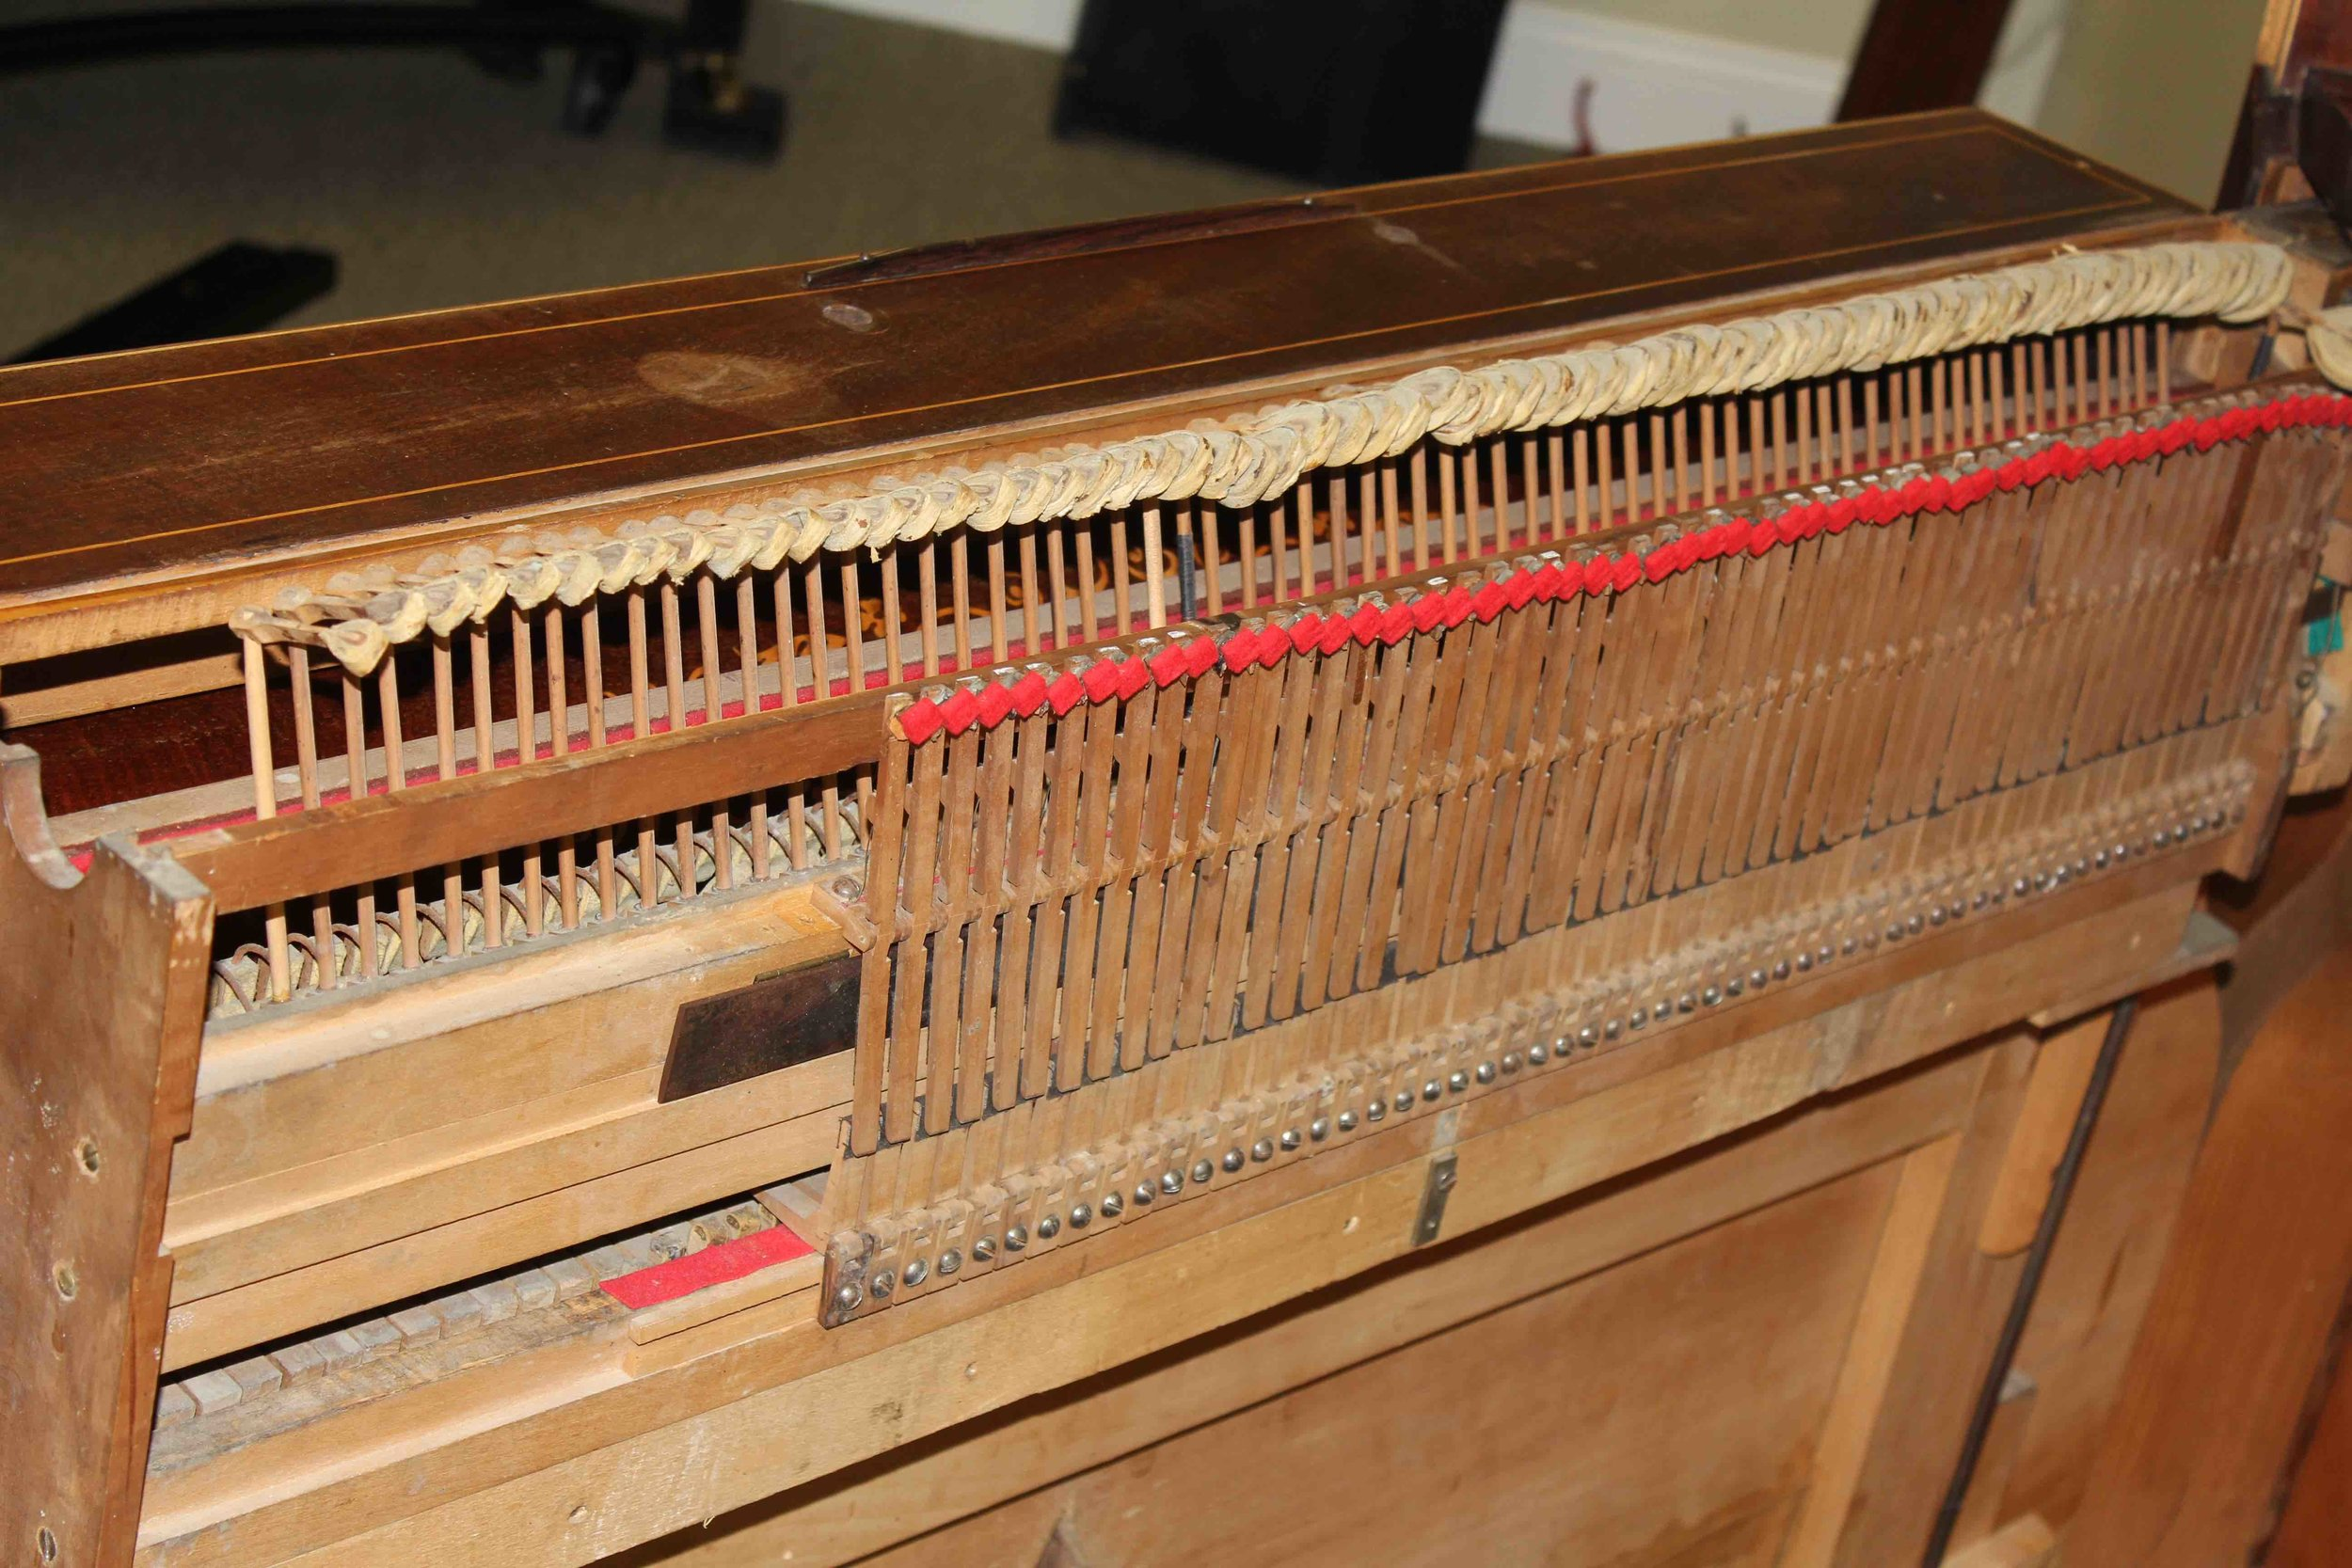 Because of the oblique angle of the strings, like that of a square piano, the hammers are angled and shaped to match.